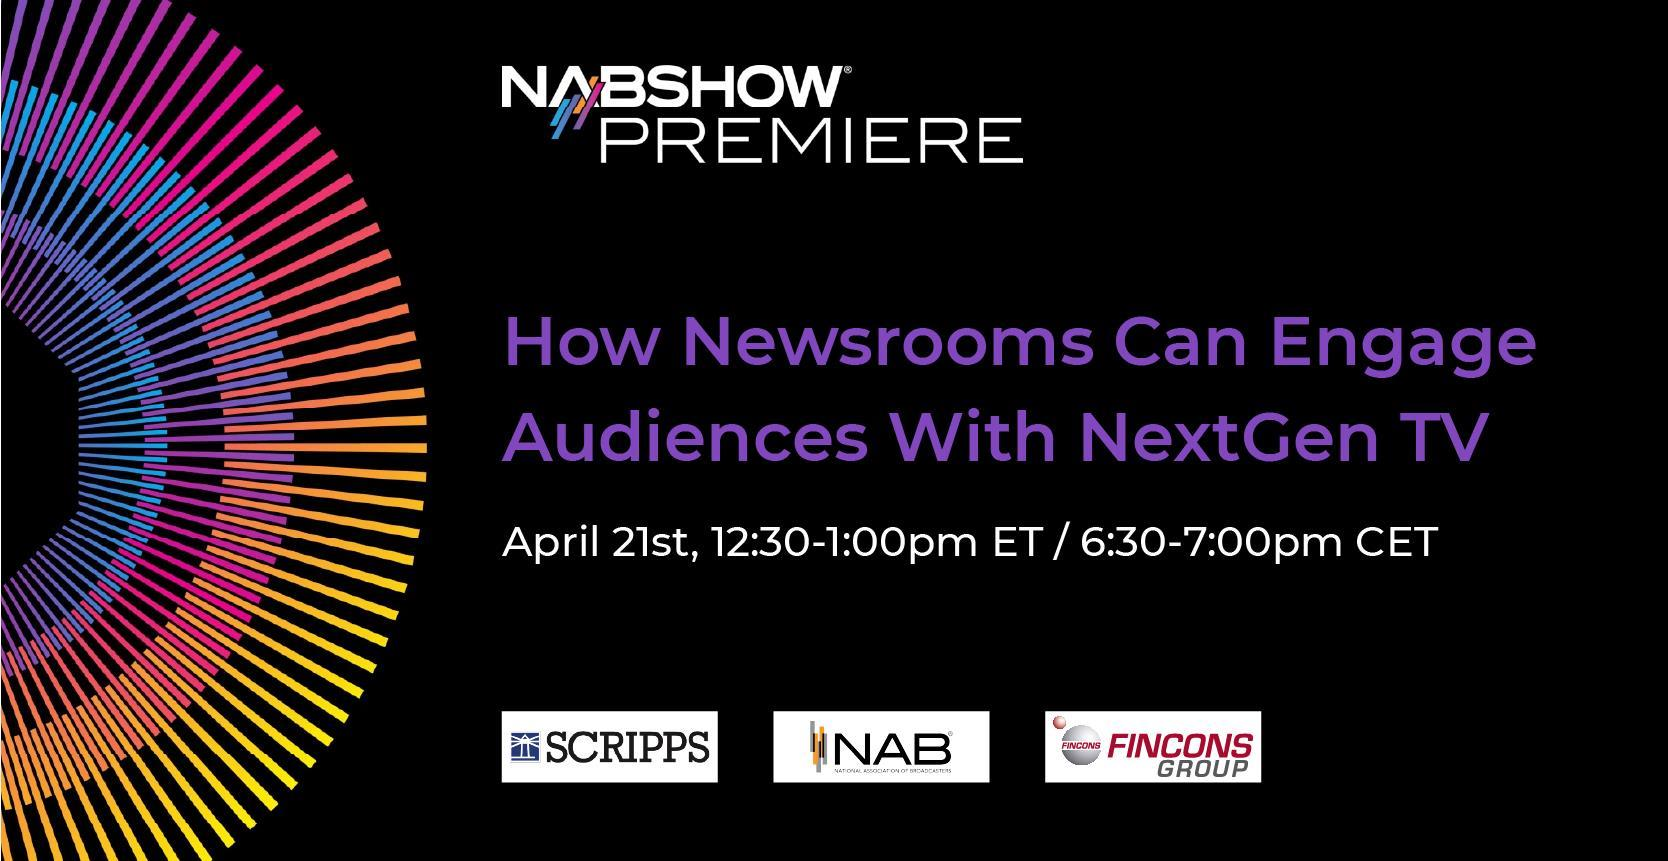 Fake News erkennen: Panel Session auf der NAB Show Premiere